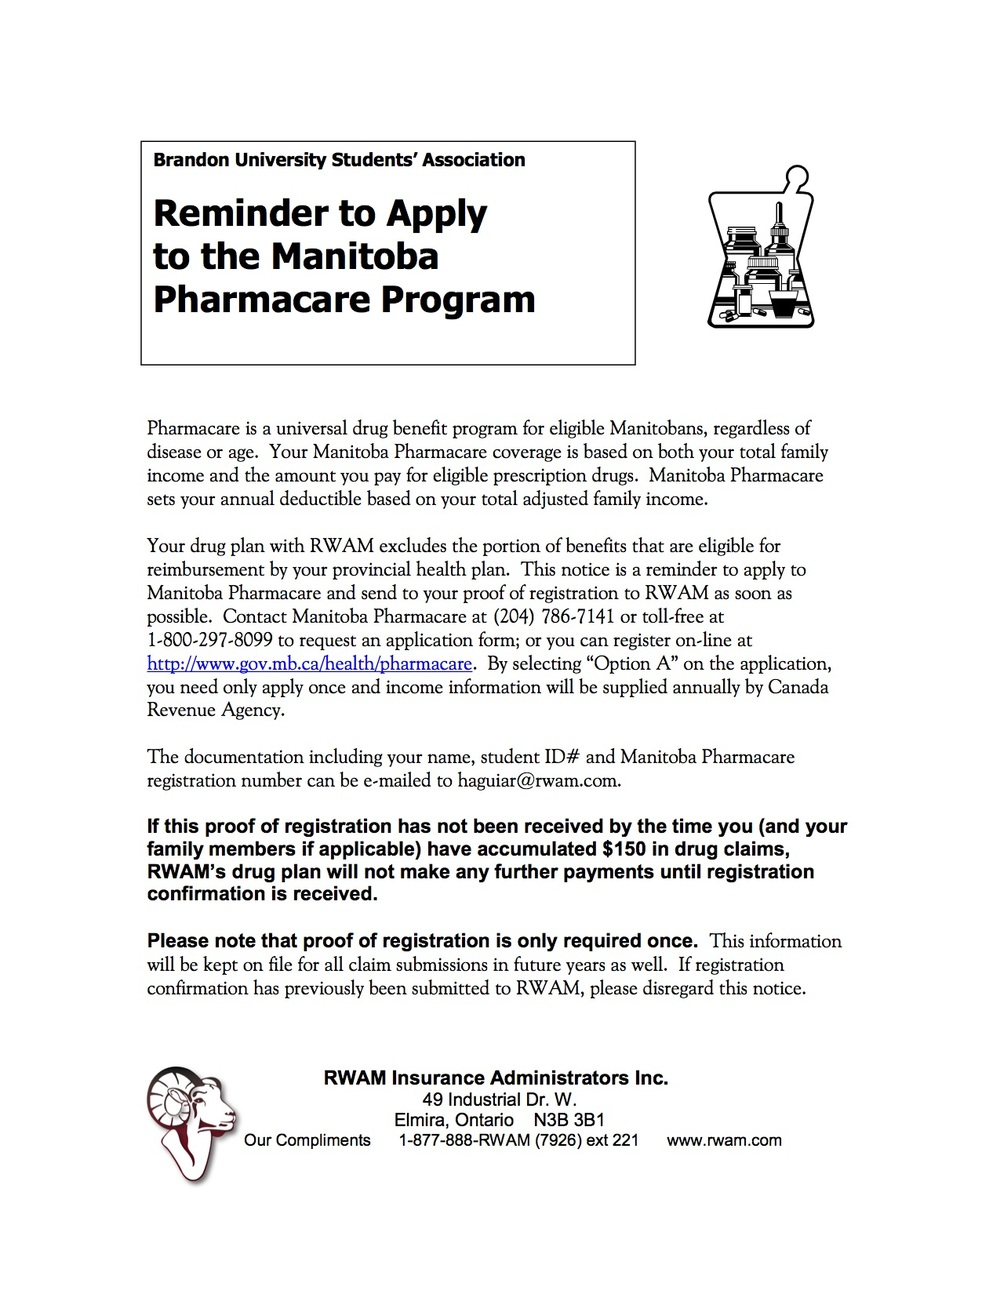 Manitoba Pharmacare Registration Reminder - Brandon University[10].jpg